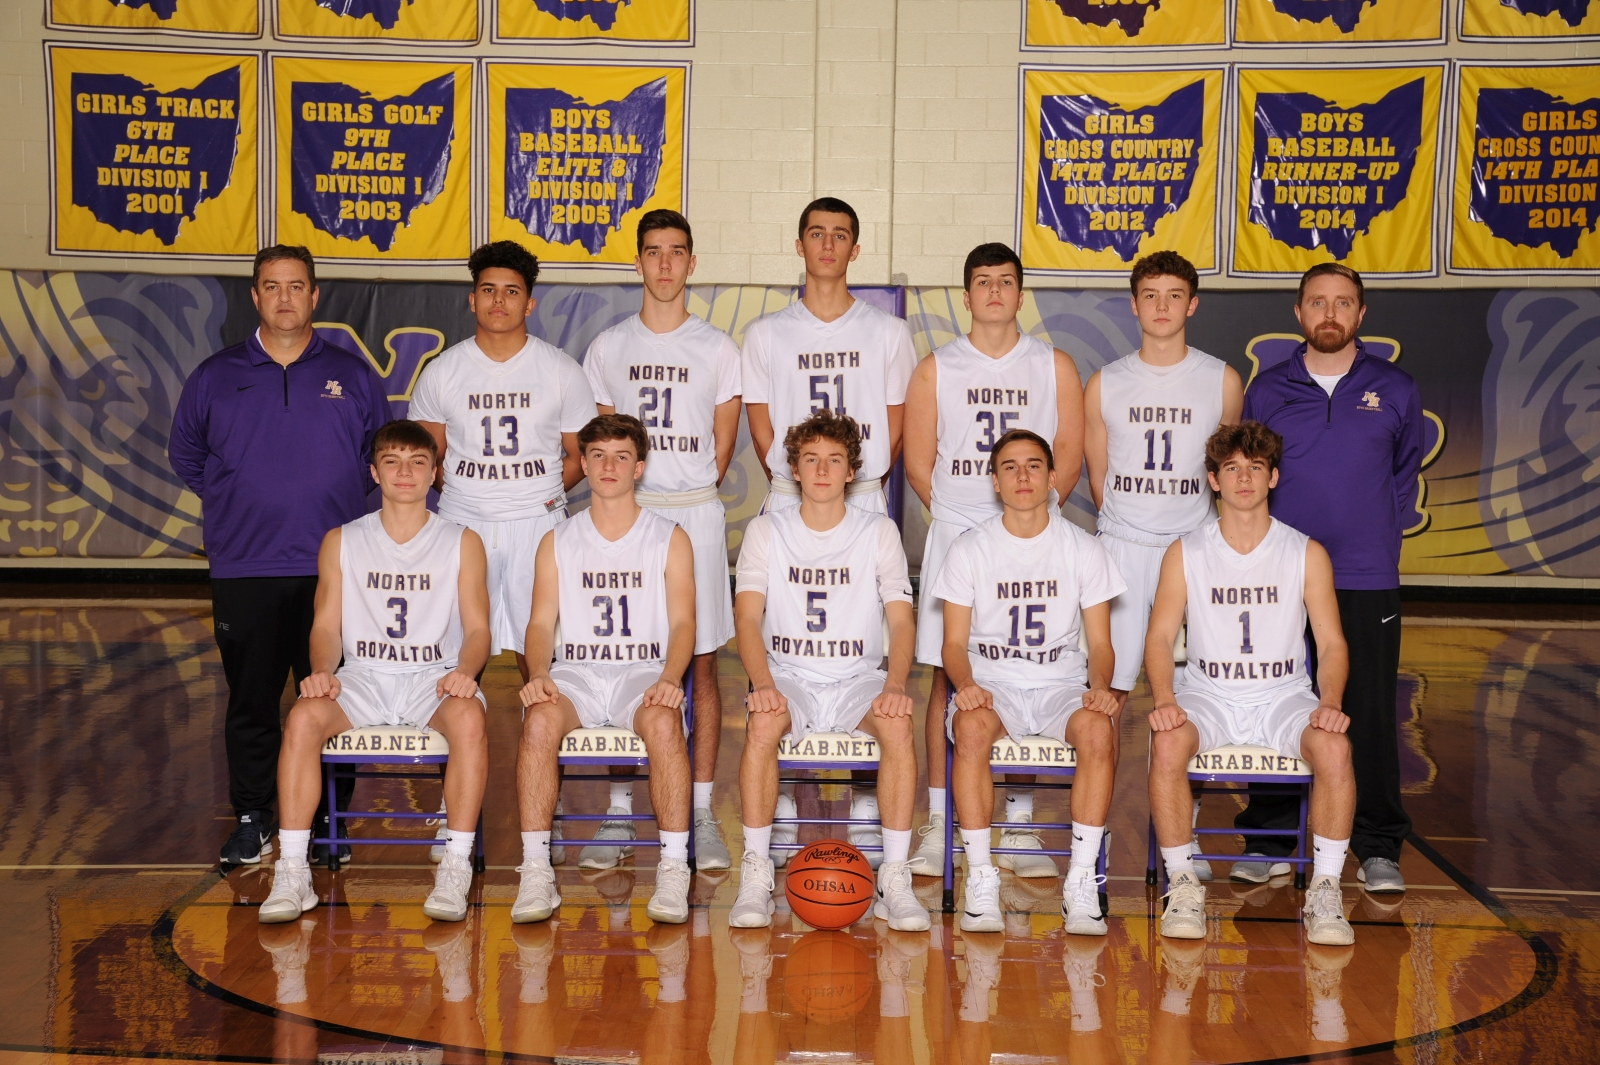 Boys JV/Freshmen Basketball Games for Tonight Tuesday, January 22nd Have Been POSTPONED